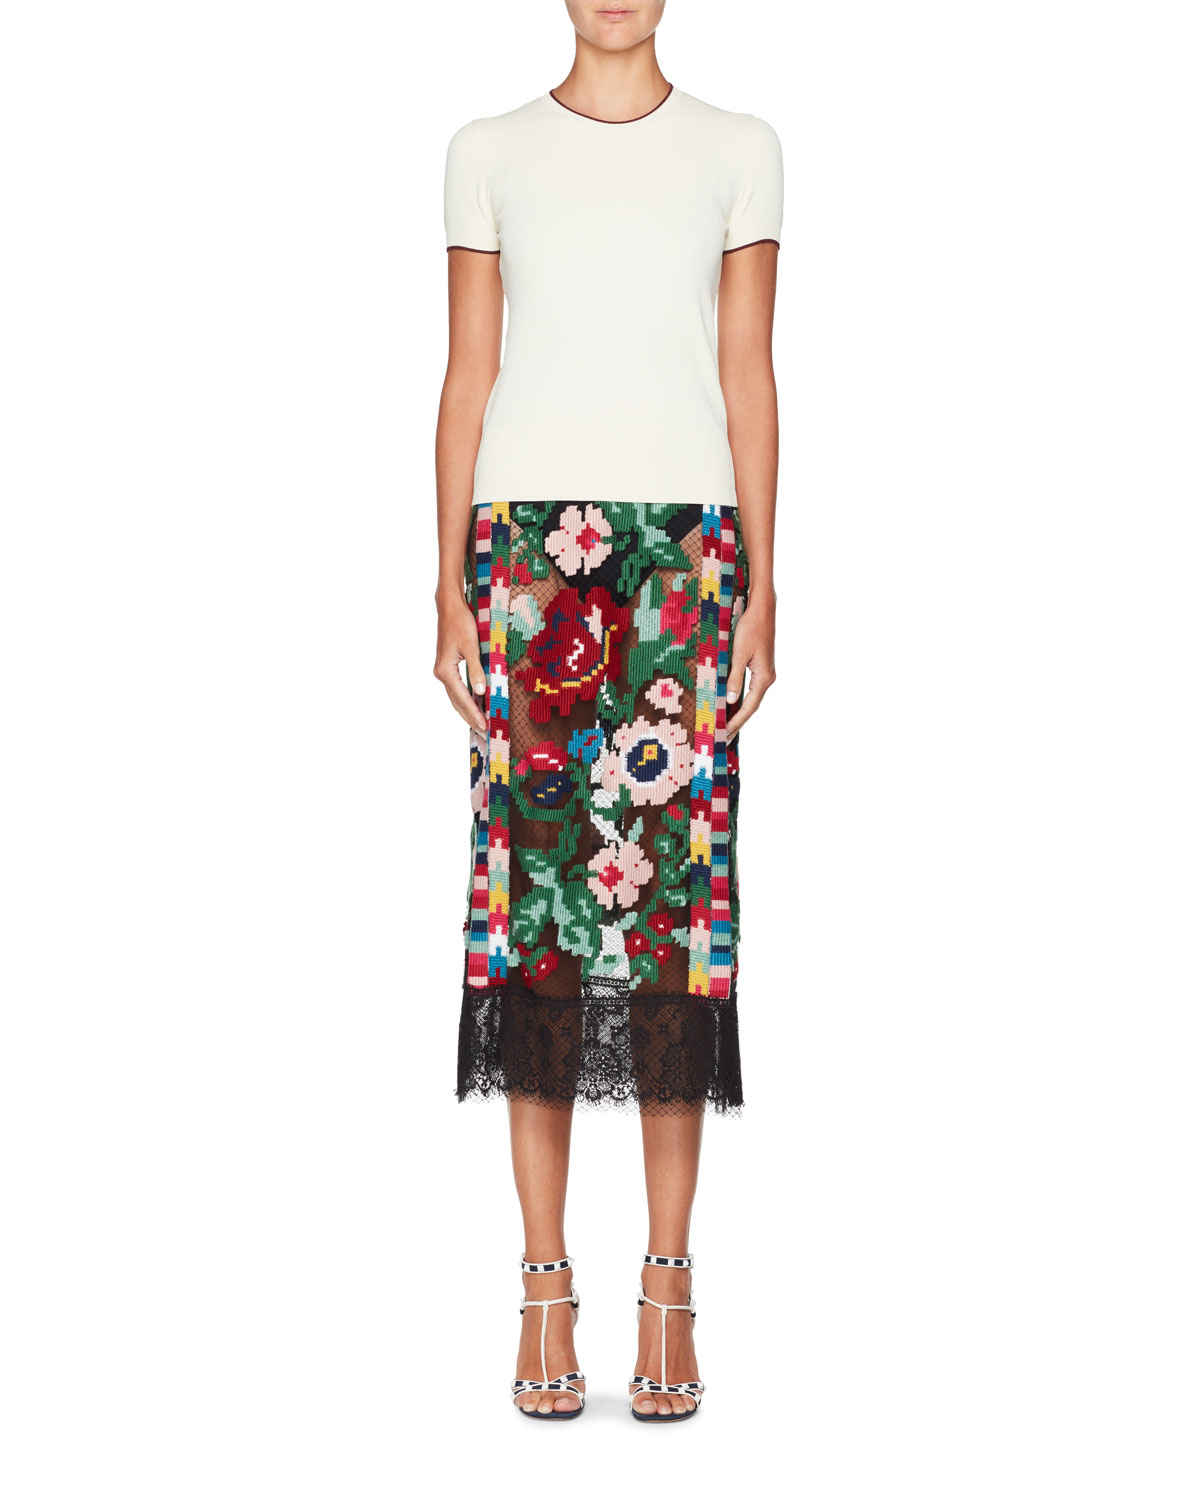 Semisheer Carpet-Embroidered Pencil Skirt with Lace Hem